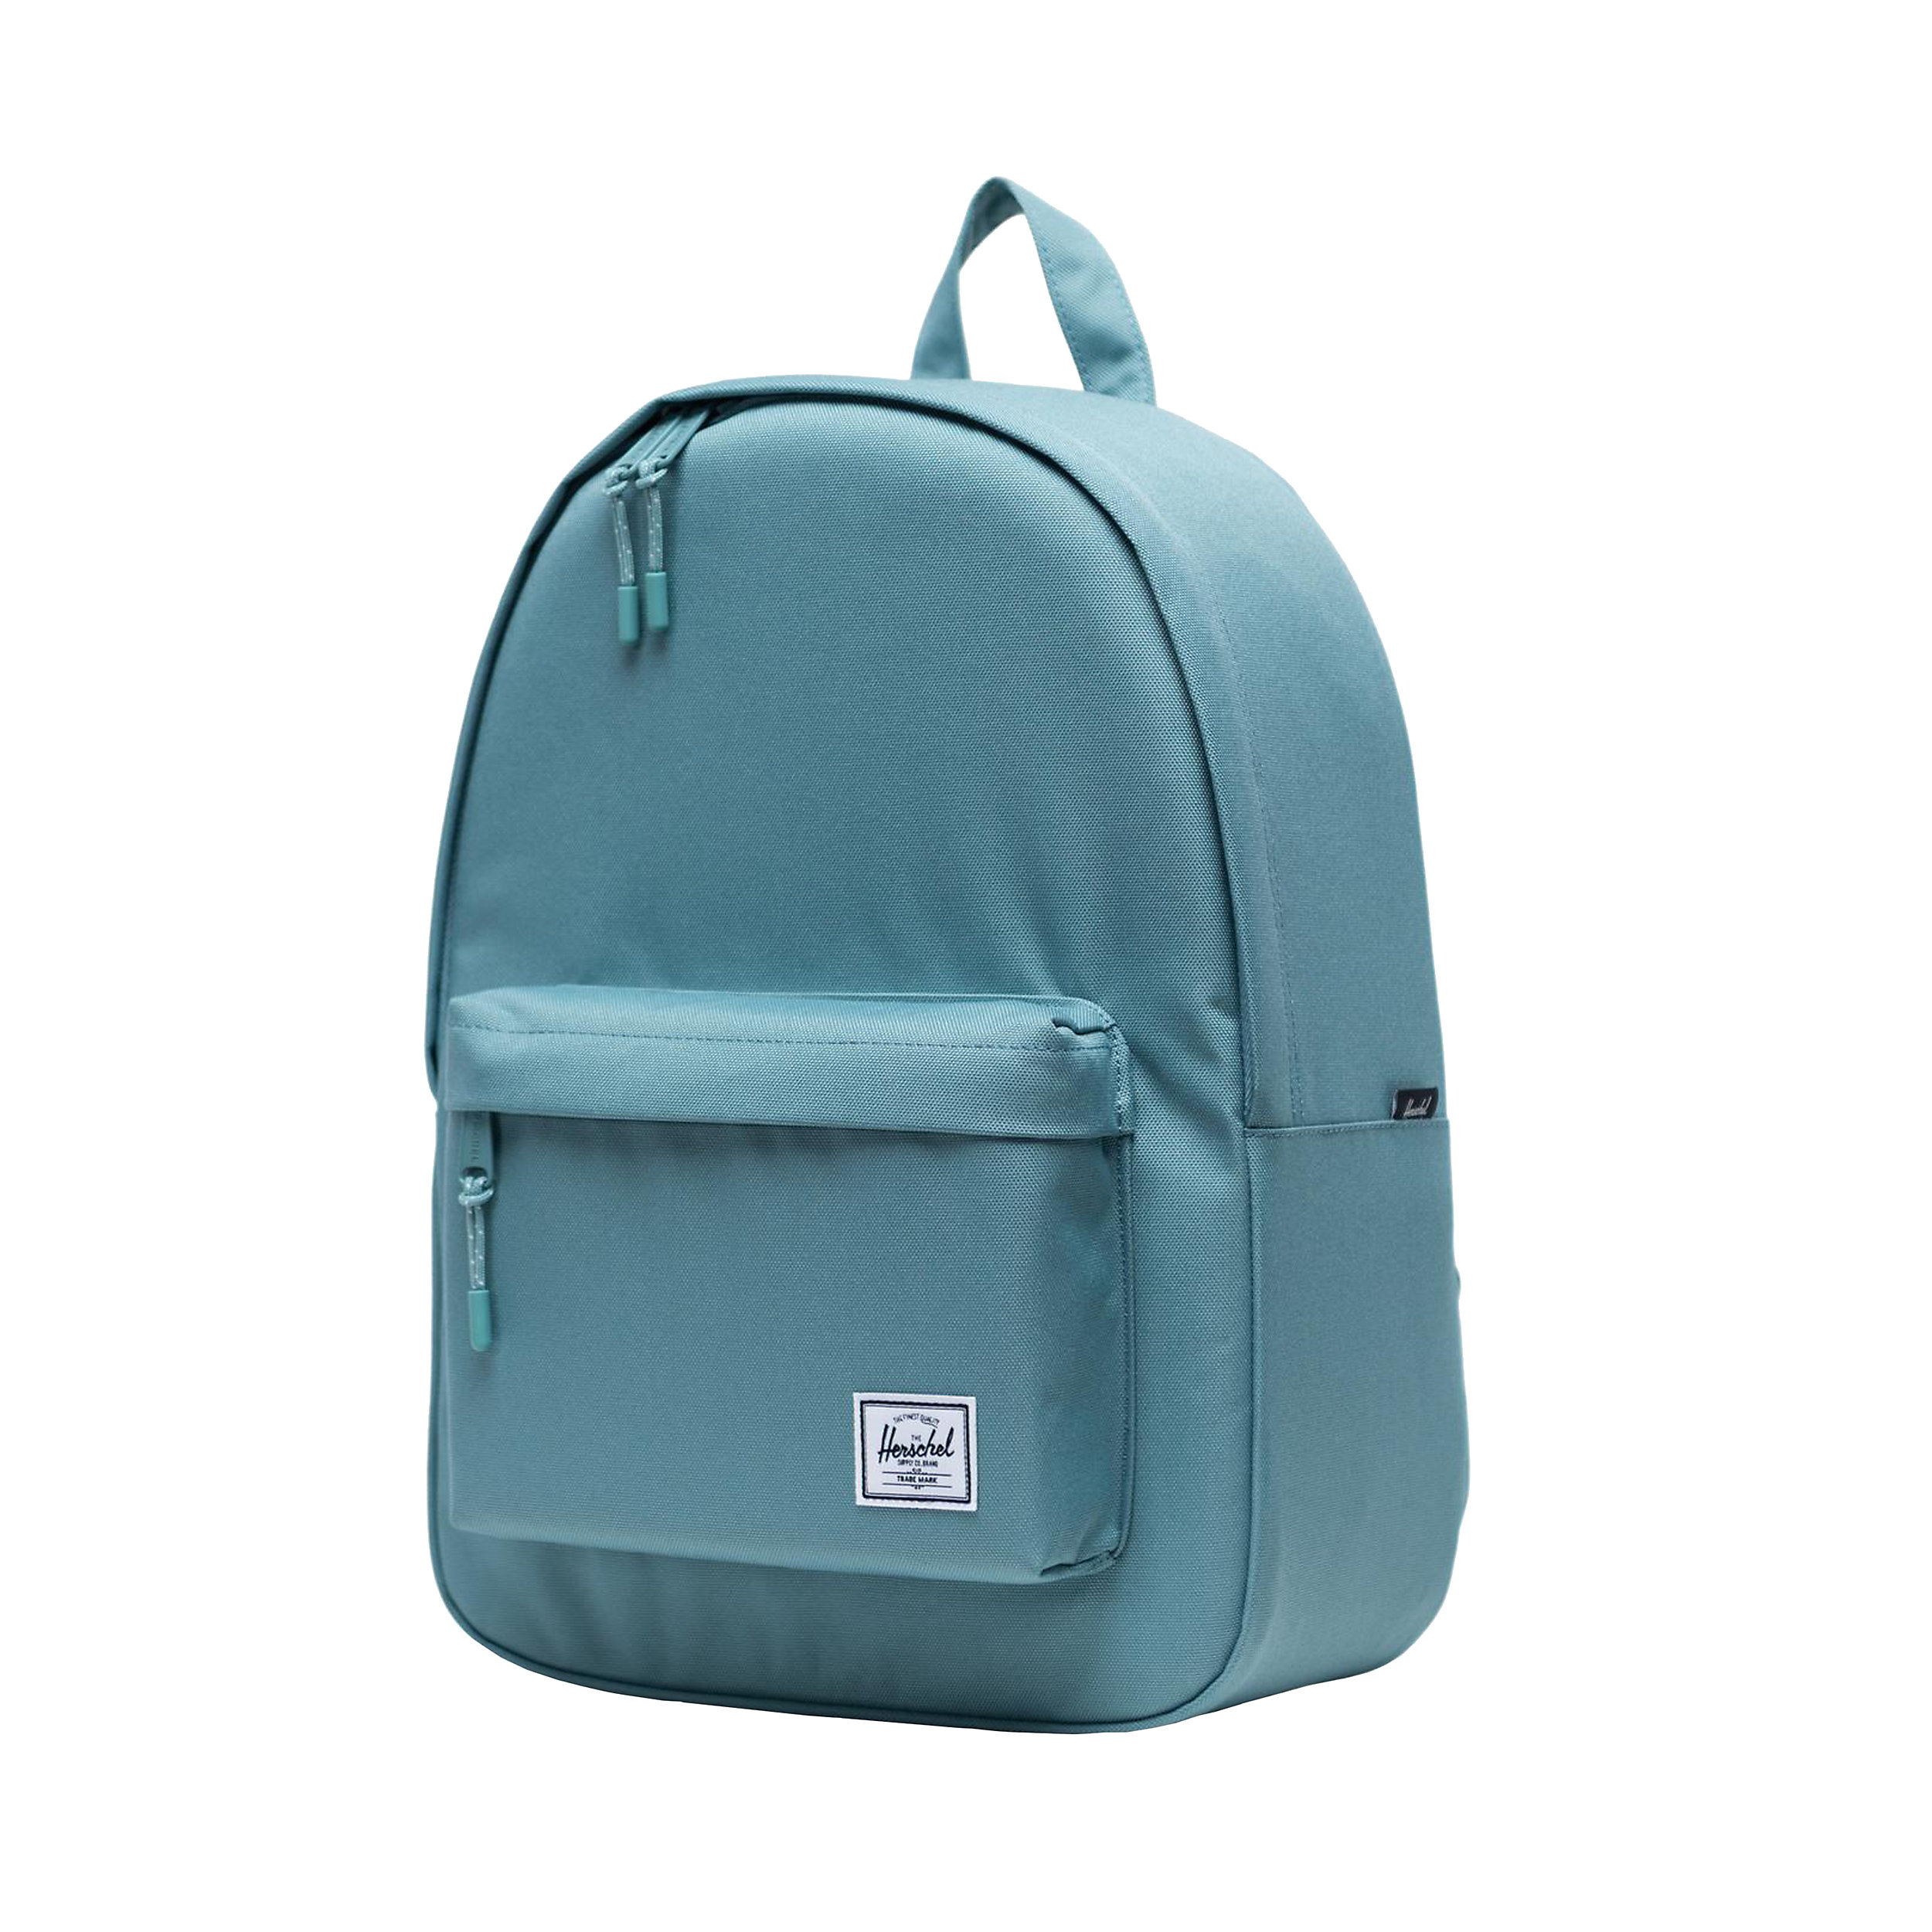 "Backpack Classic Mid-Volume 13"" Classics Mid Backpacks 18 Liter"